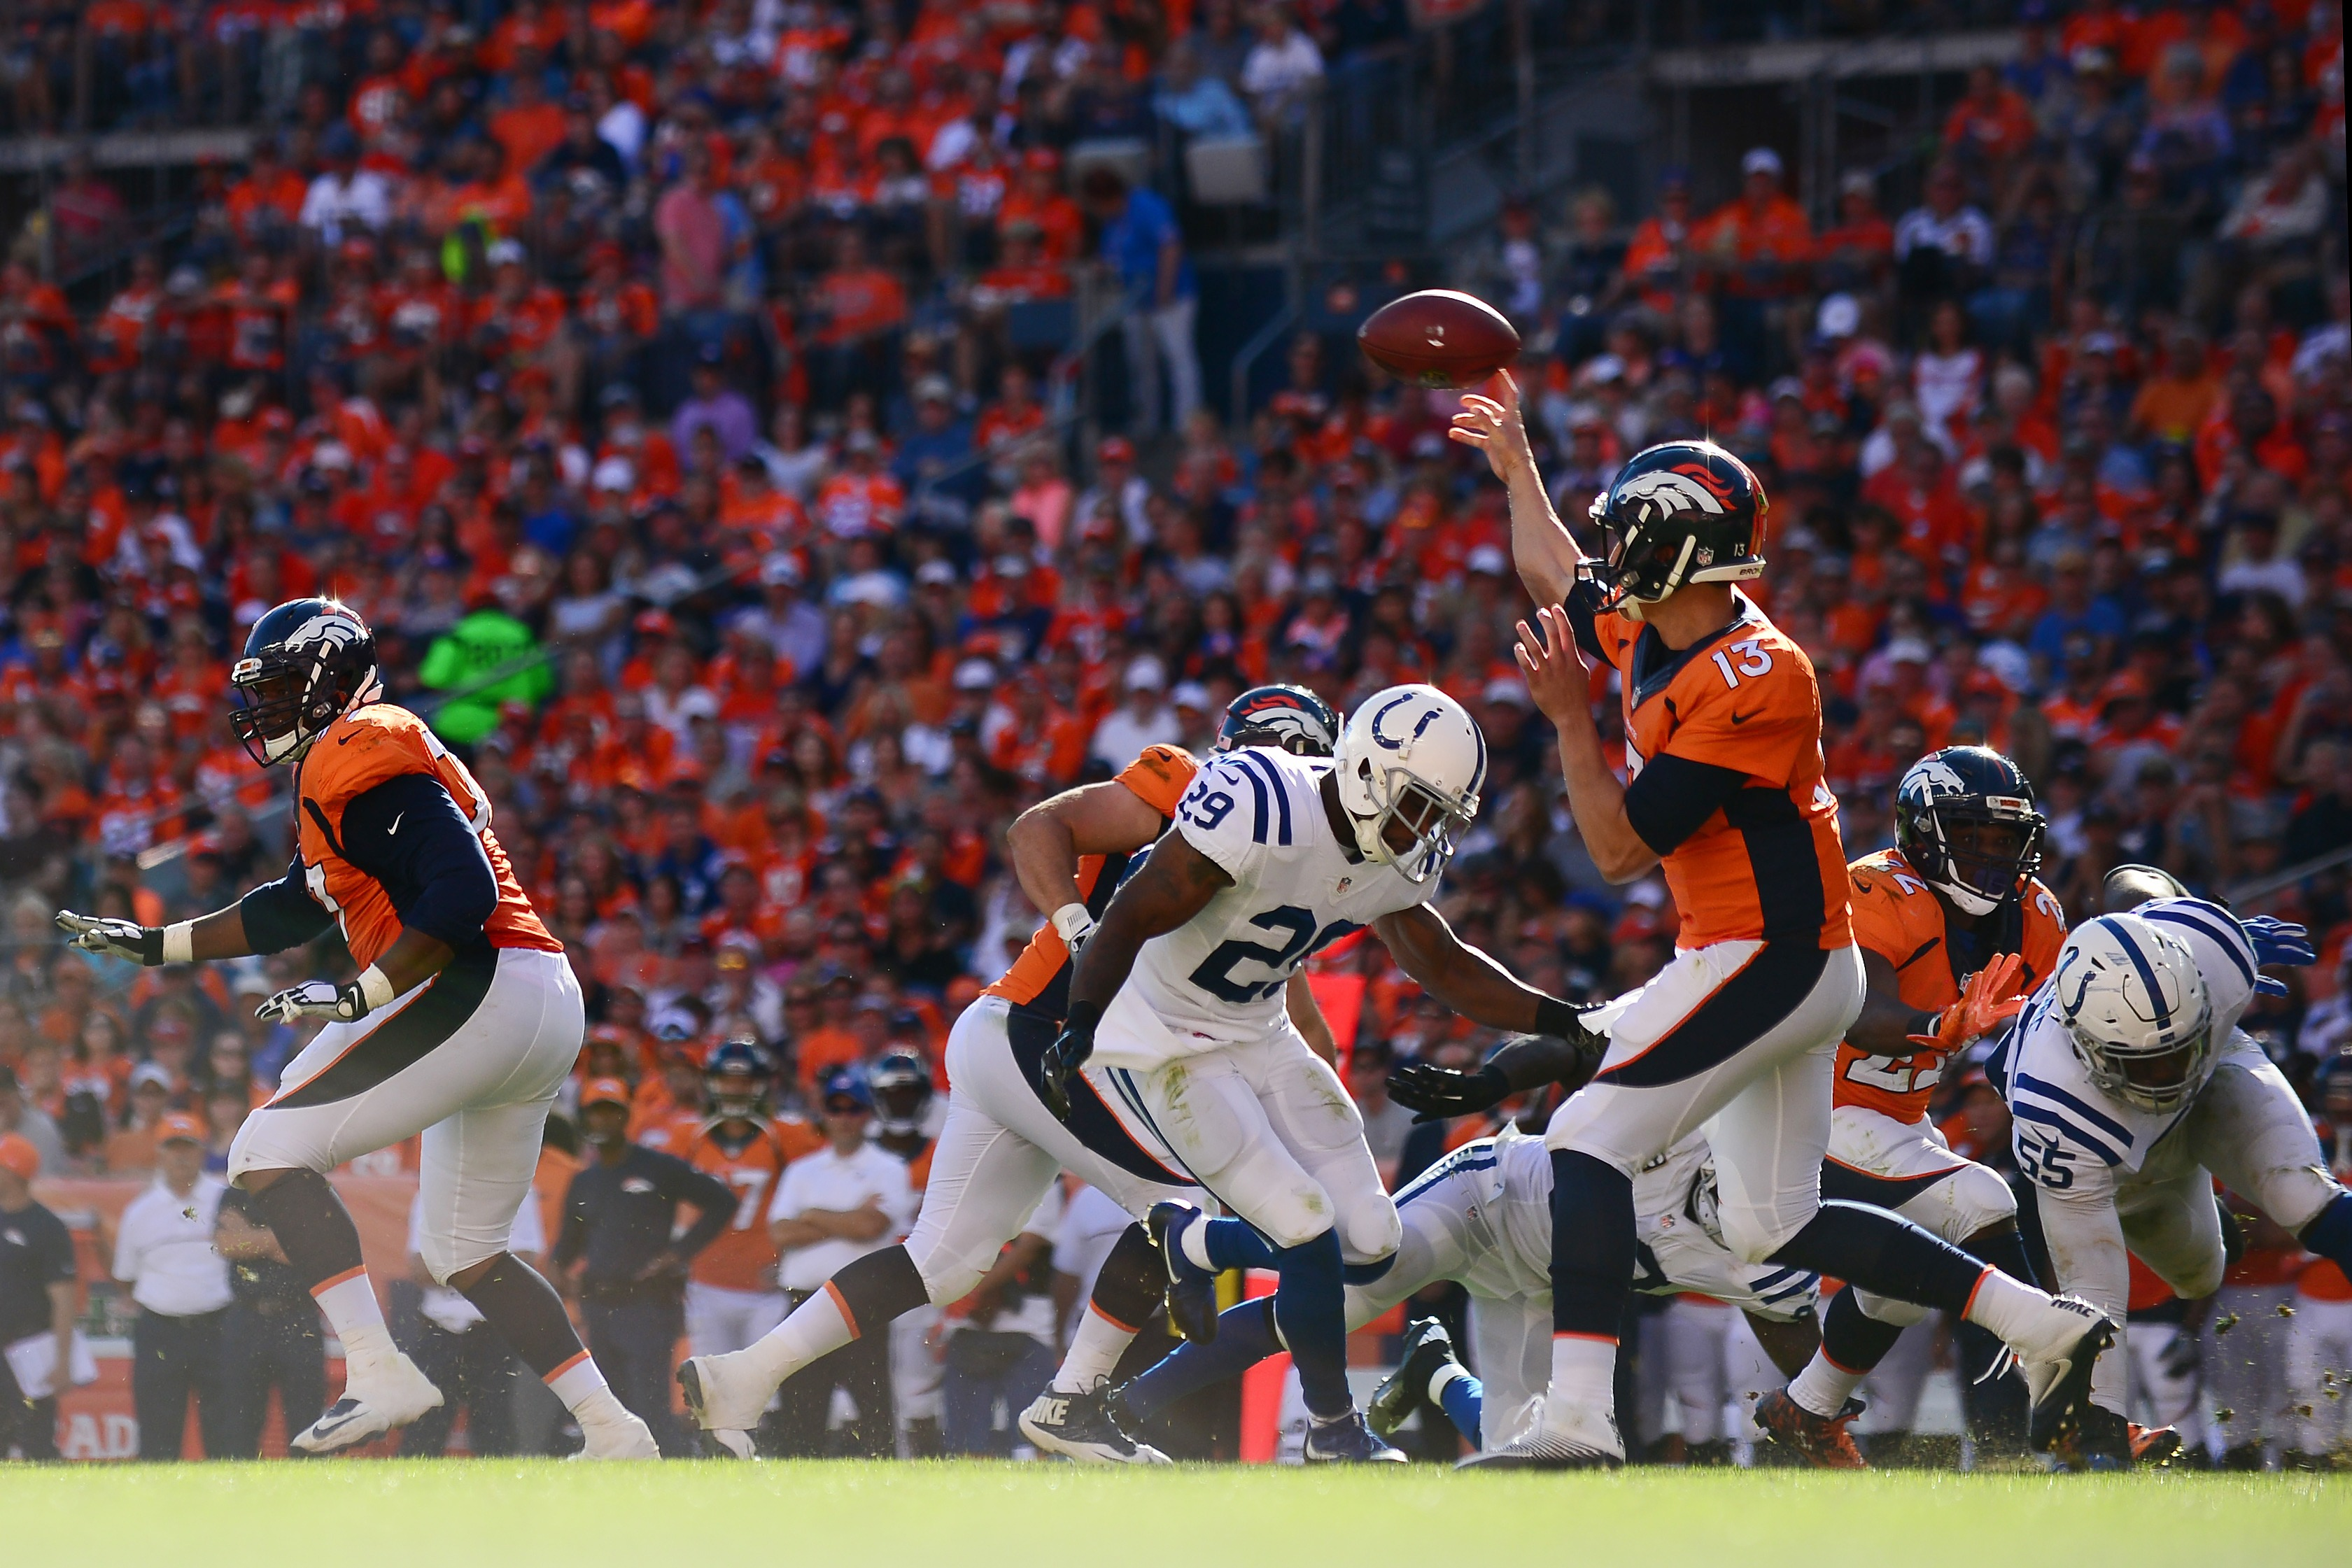 Quarterback Trevor Siemian of the Denver Broncos throws for a completion in the third quarter of the game against the Indianapolis Colts on Sept. 18, 2016 in Denver. (credit: Dustin Bradford/Getty Images)